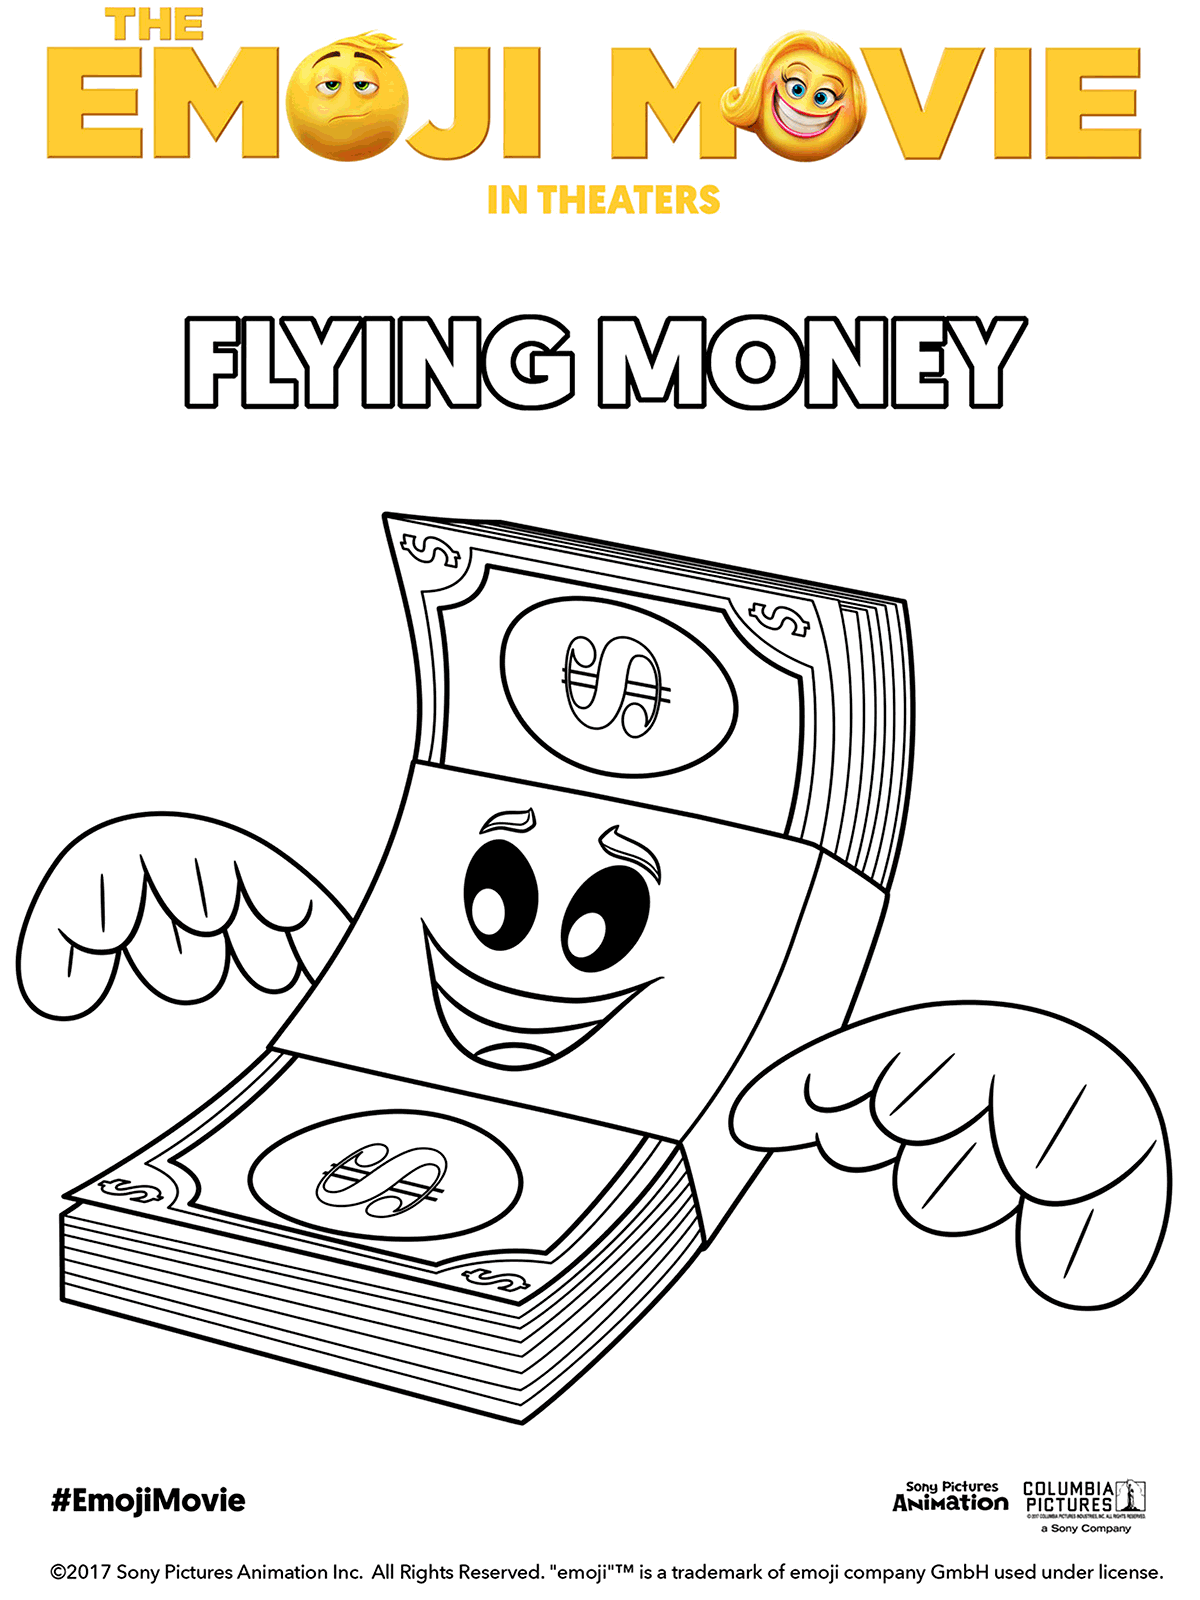 The Emoji Movie Flying Money Coloring Page